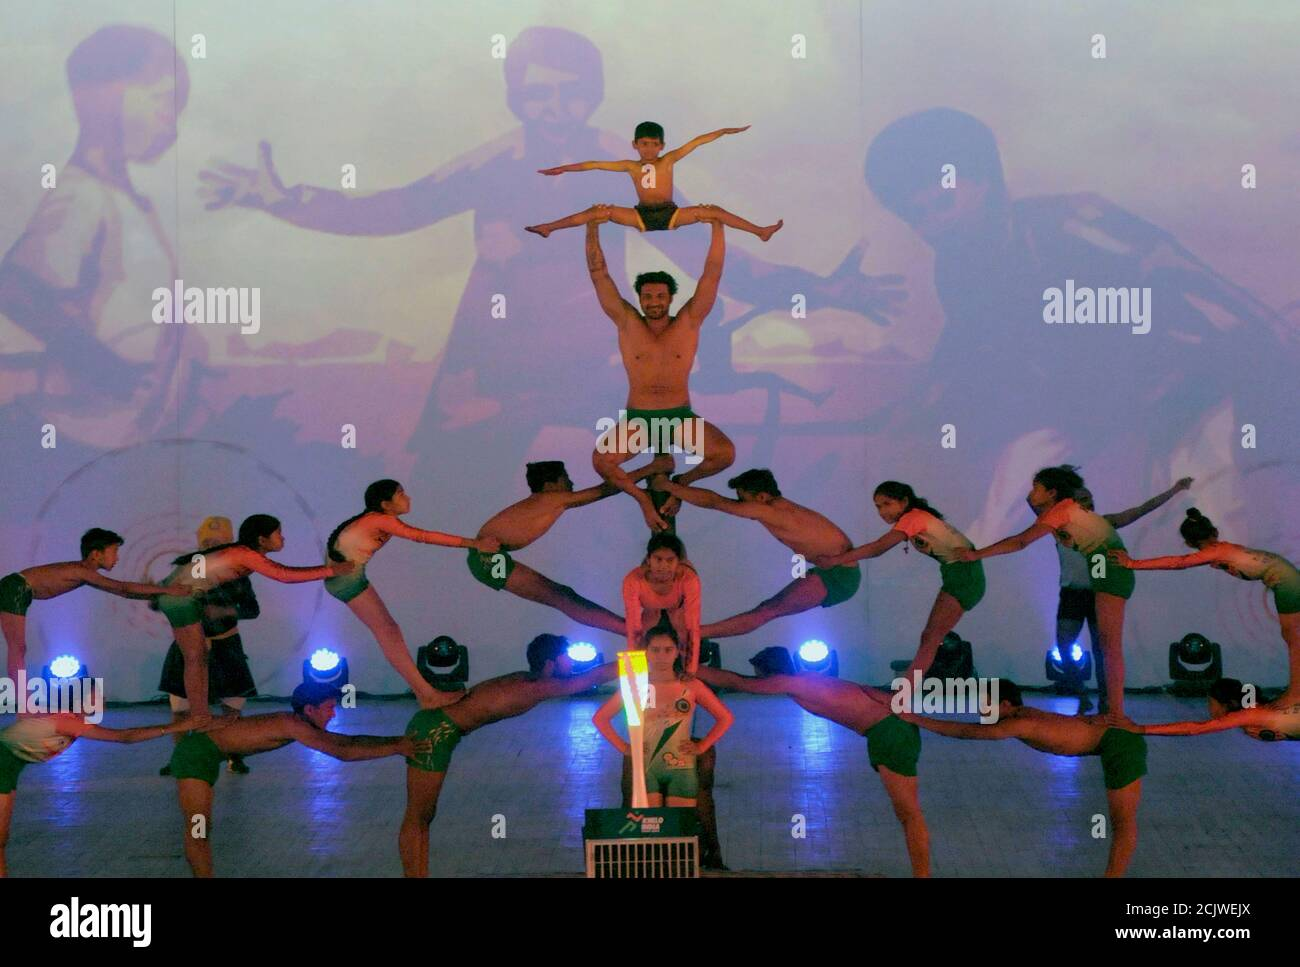 Acro Dance High Resolution Stock Photography And Images Alamy